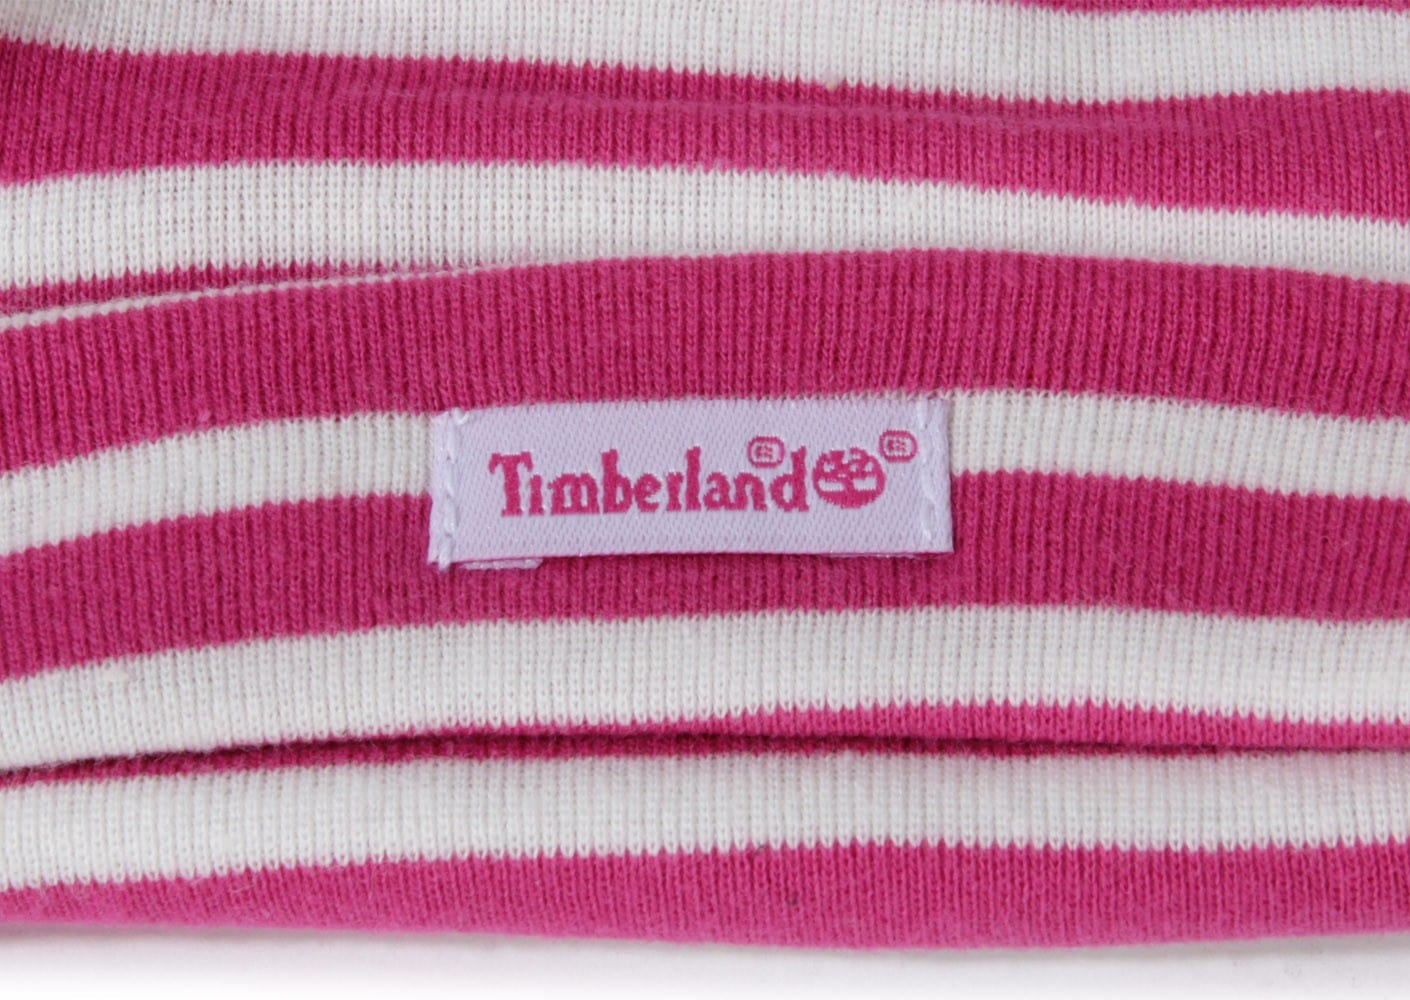 Timberland Pack Boots 6 inch Crib Bonnet Rose Chaussures